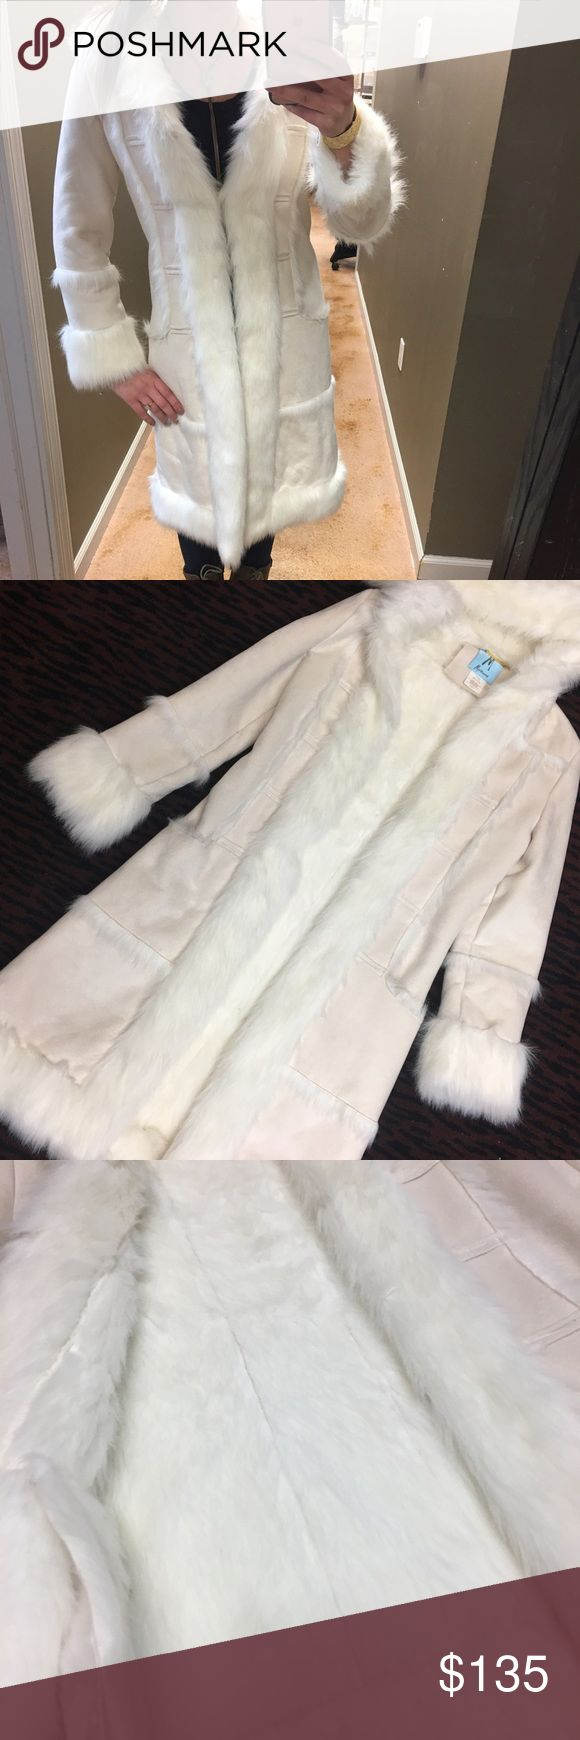 Guess Marciano Faux Fur Heavy Coat Amazing condition basically no signs of wear. It would fit anyone XS-S. Guess by Marciano Jackets & Coats Pea Coats